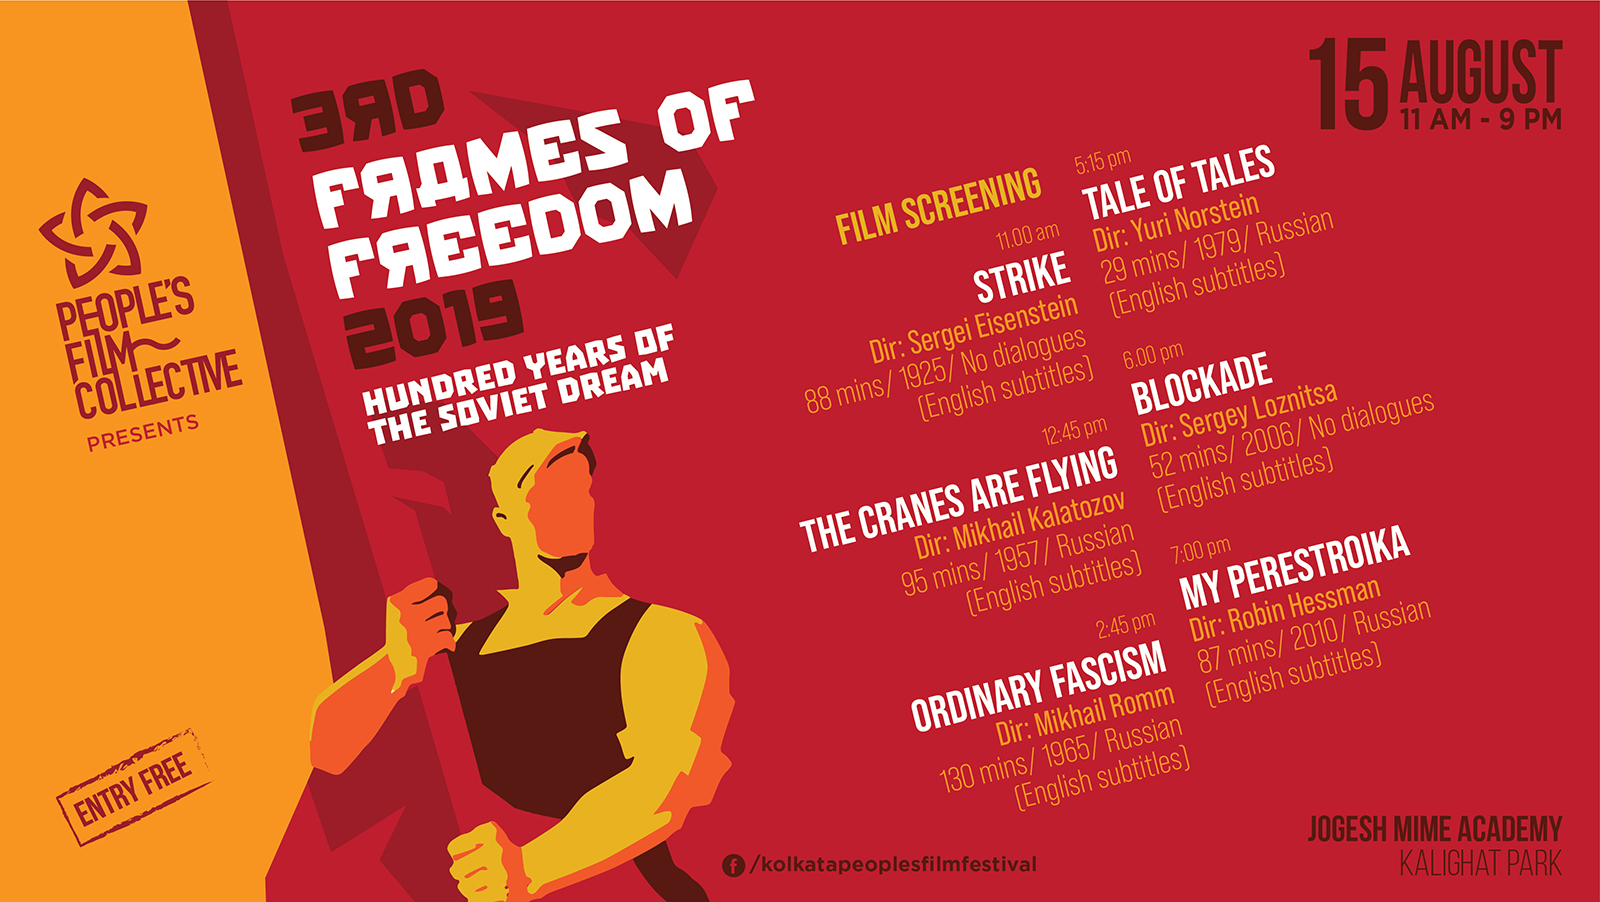 Frames of Freedom: 100 Years of the Soviet Dream